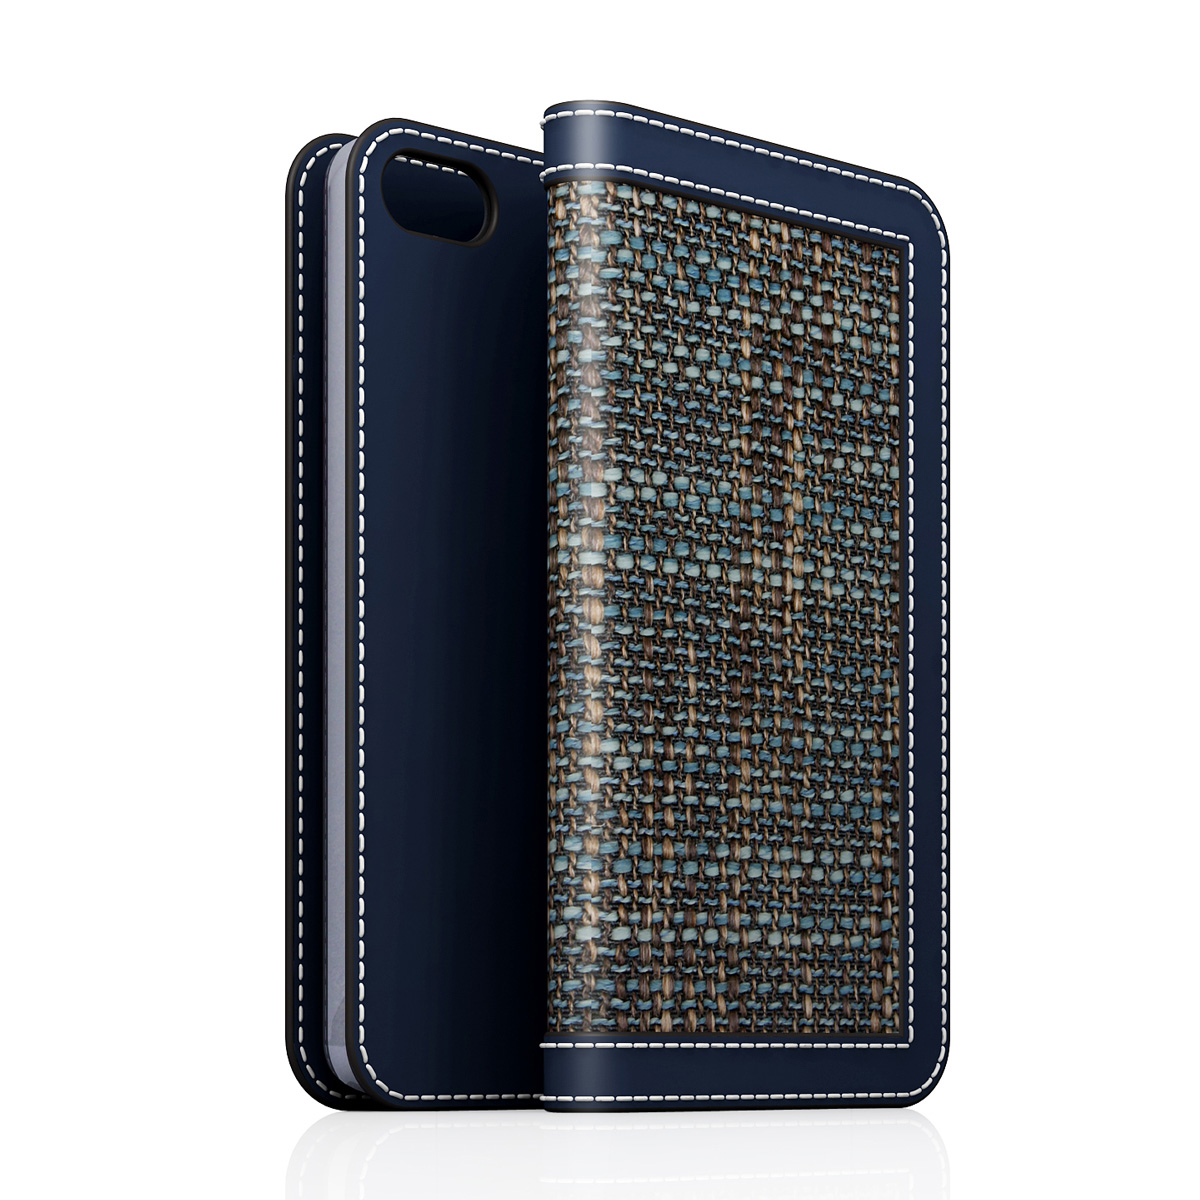 [iPhone5/5s] D5 Edition Calf Skin Leather Diary ネイビー